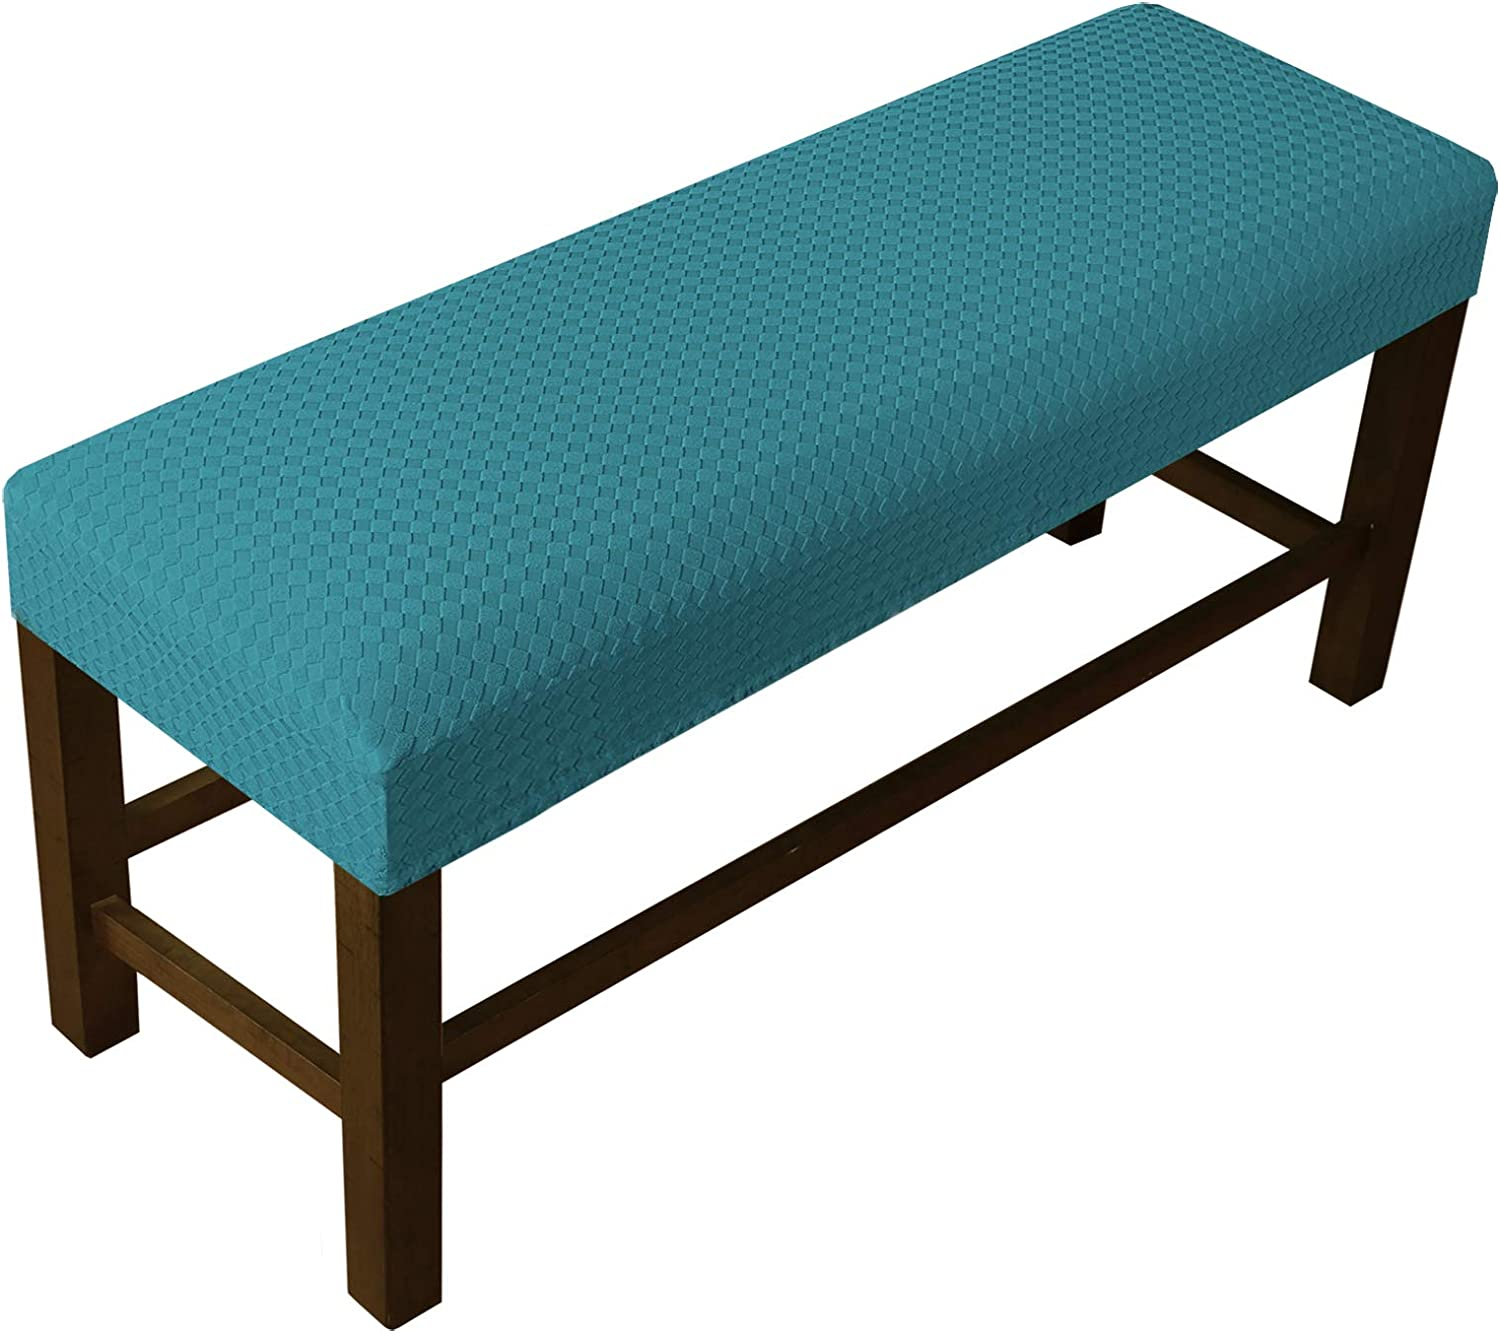 Stretch Bench Covers for Living Room Stretch Spandex Bench Slipcover Rectangle Removable Washable Bench Furniture Seat Protector (Medium, Peacock Blue)